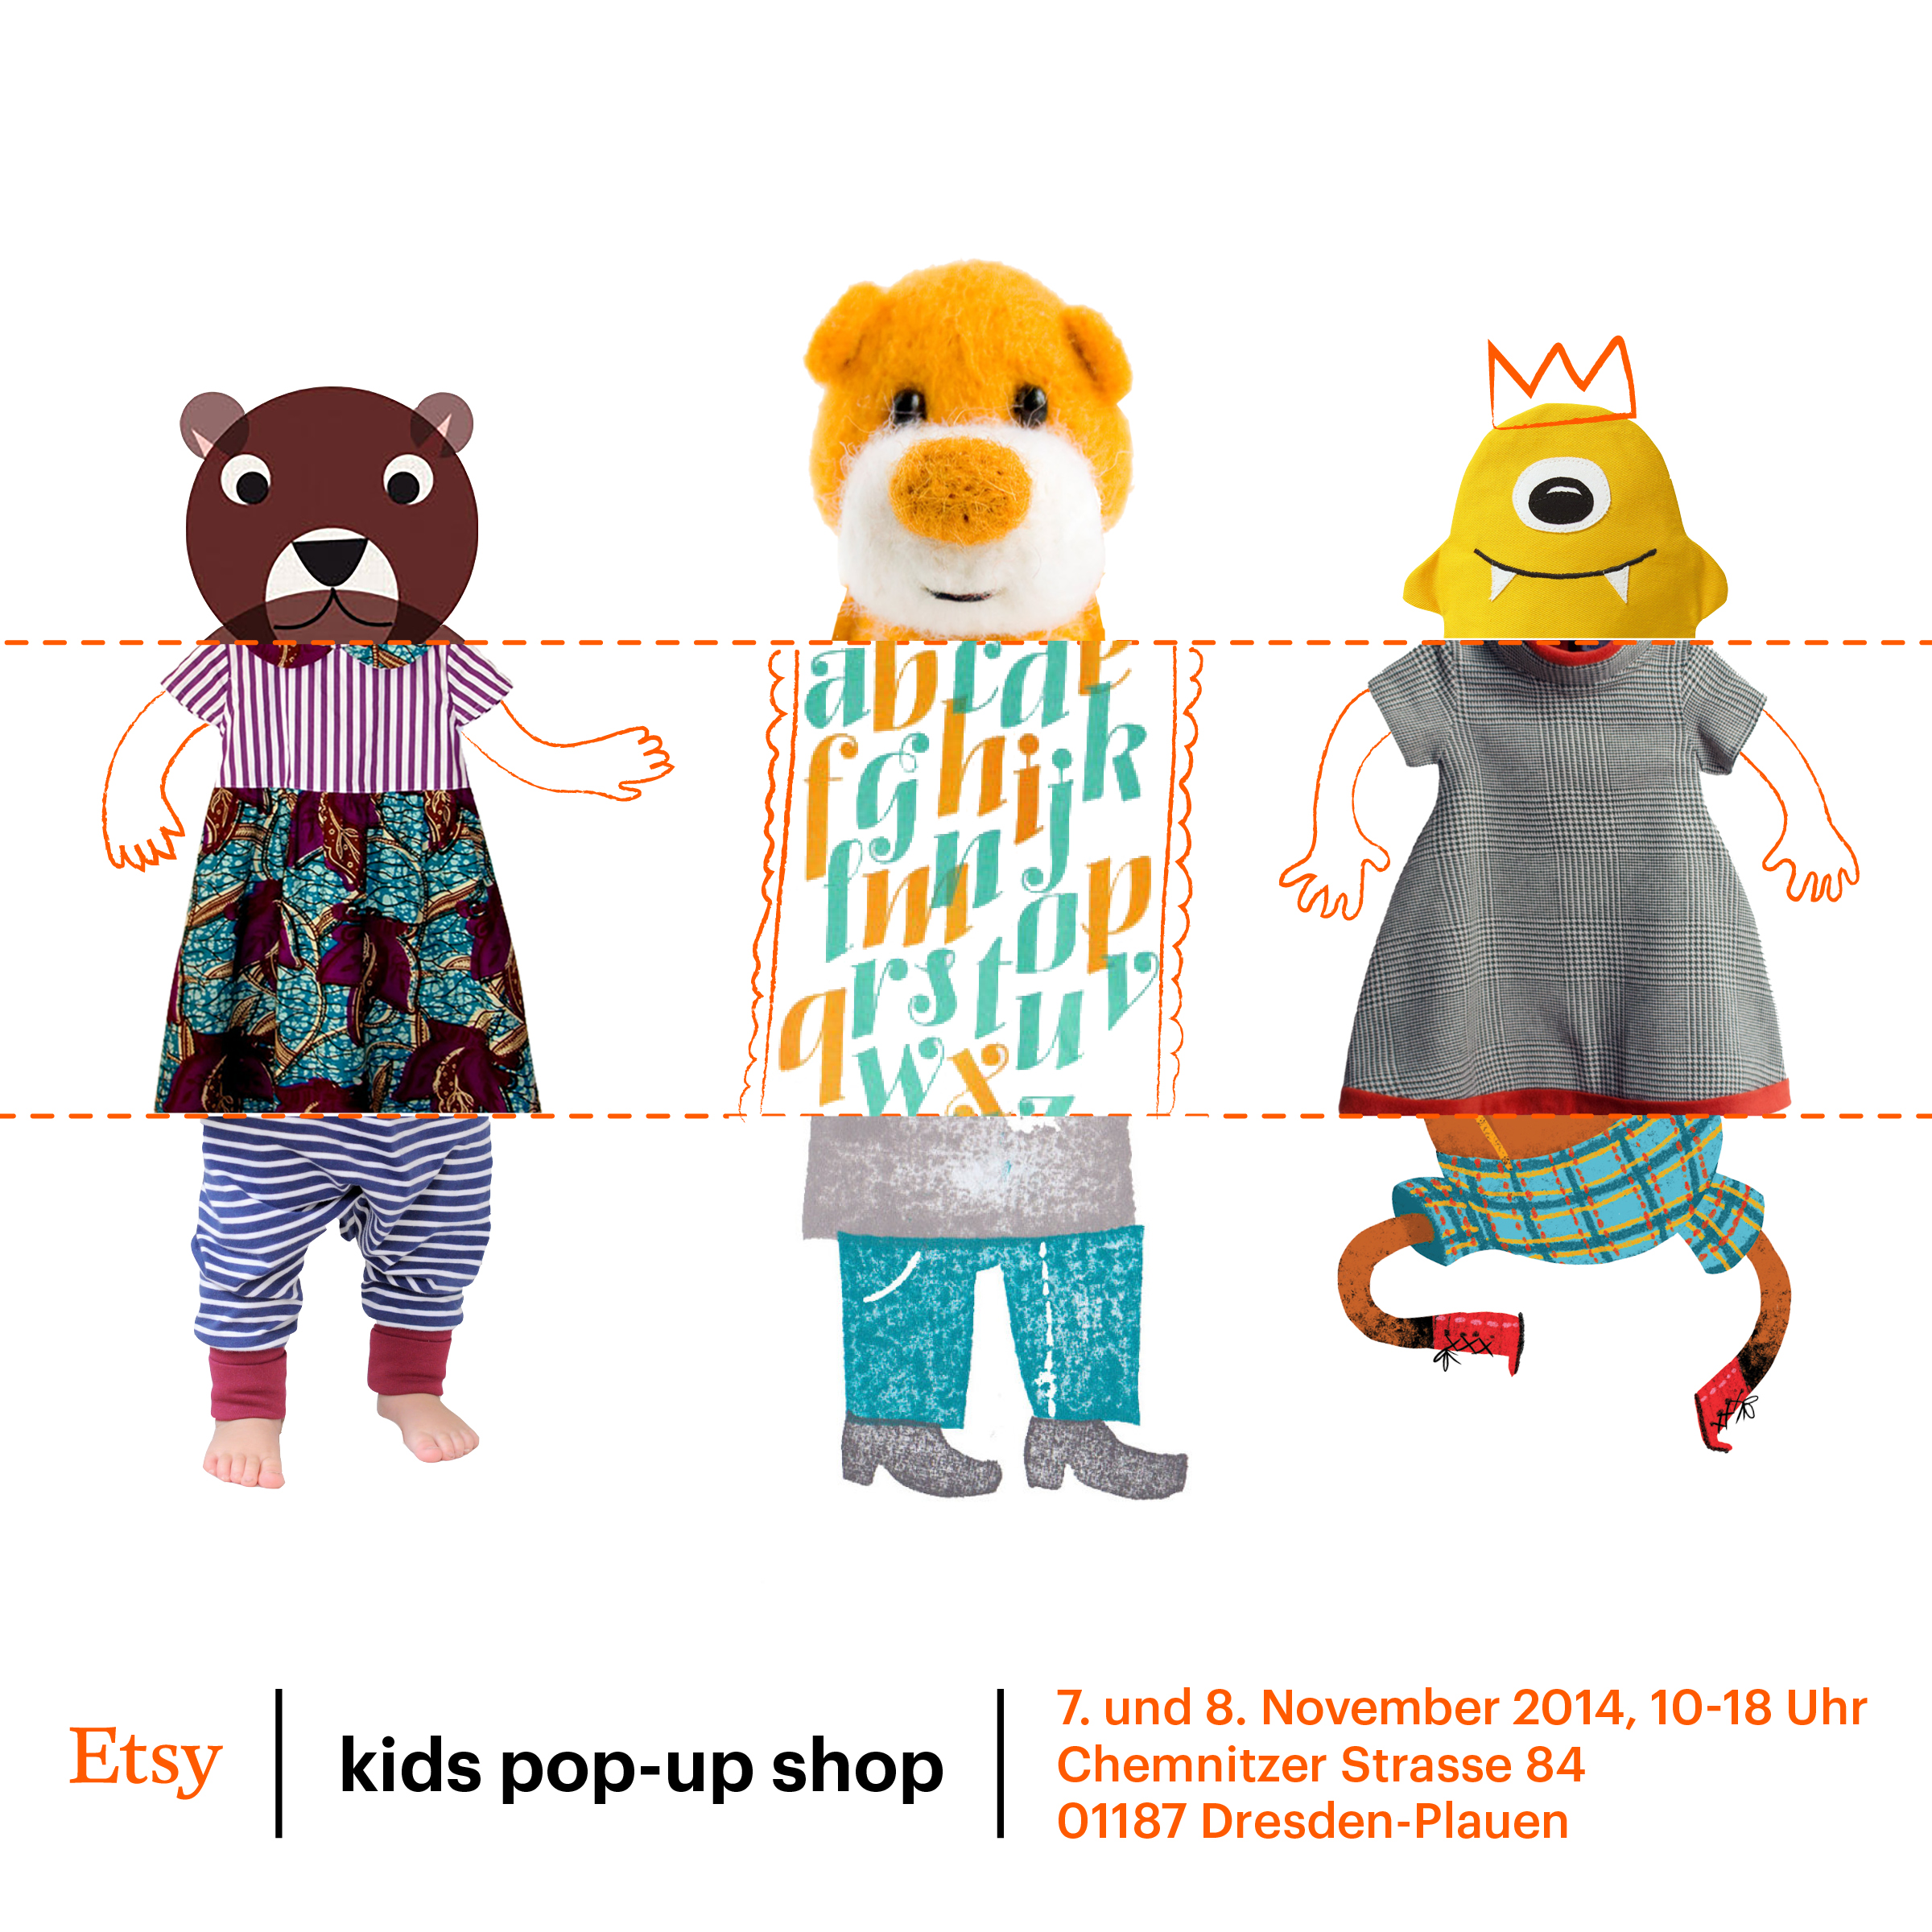 1537-ETSY_KIDS-POP_UP_SHOP-facebook_post-1200x1200-R3v1 (1)